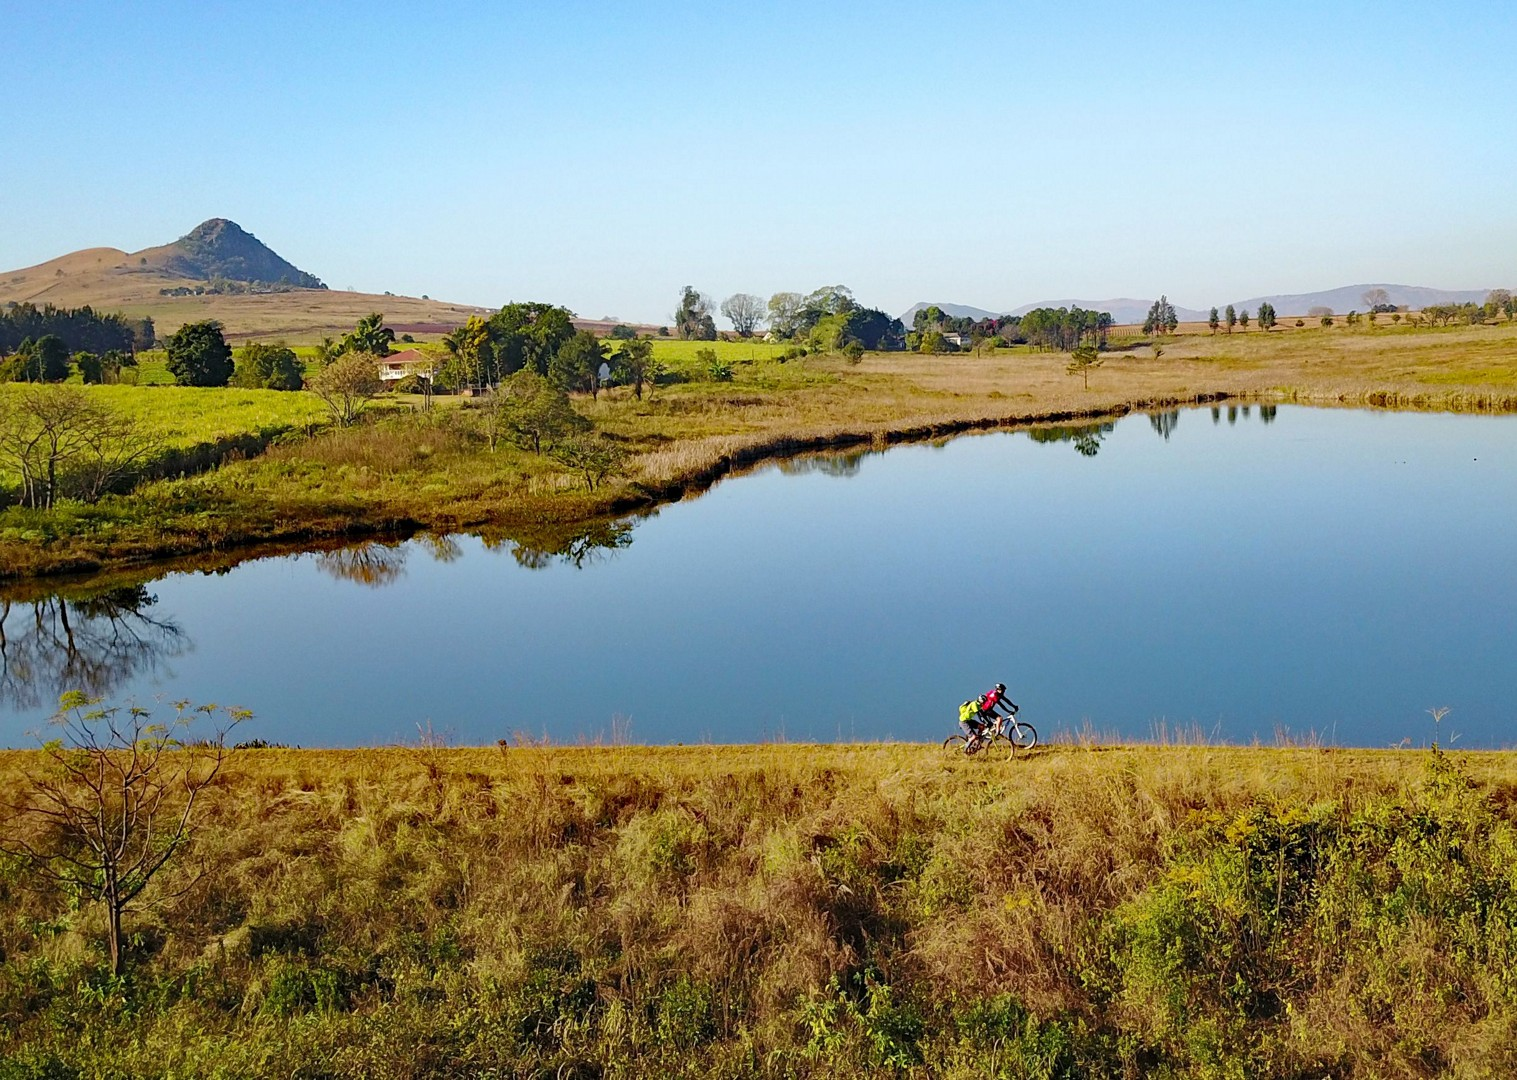 Riding over the dam.jpg - Swaziland - Cycling Safari - Cycling Adventures